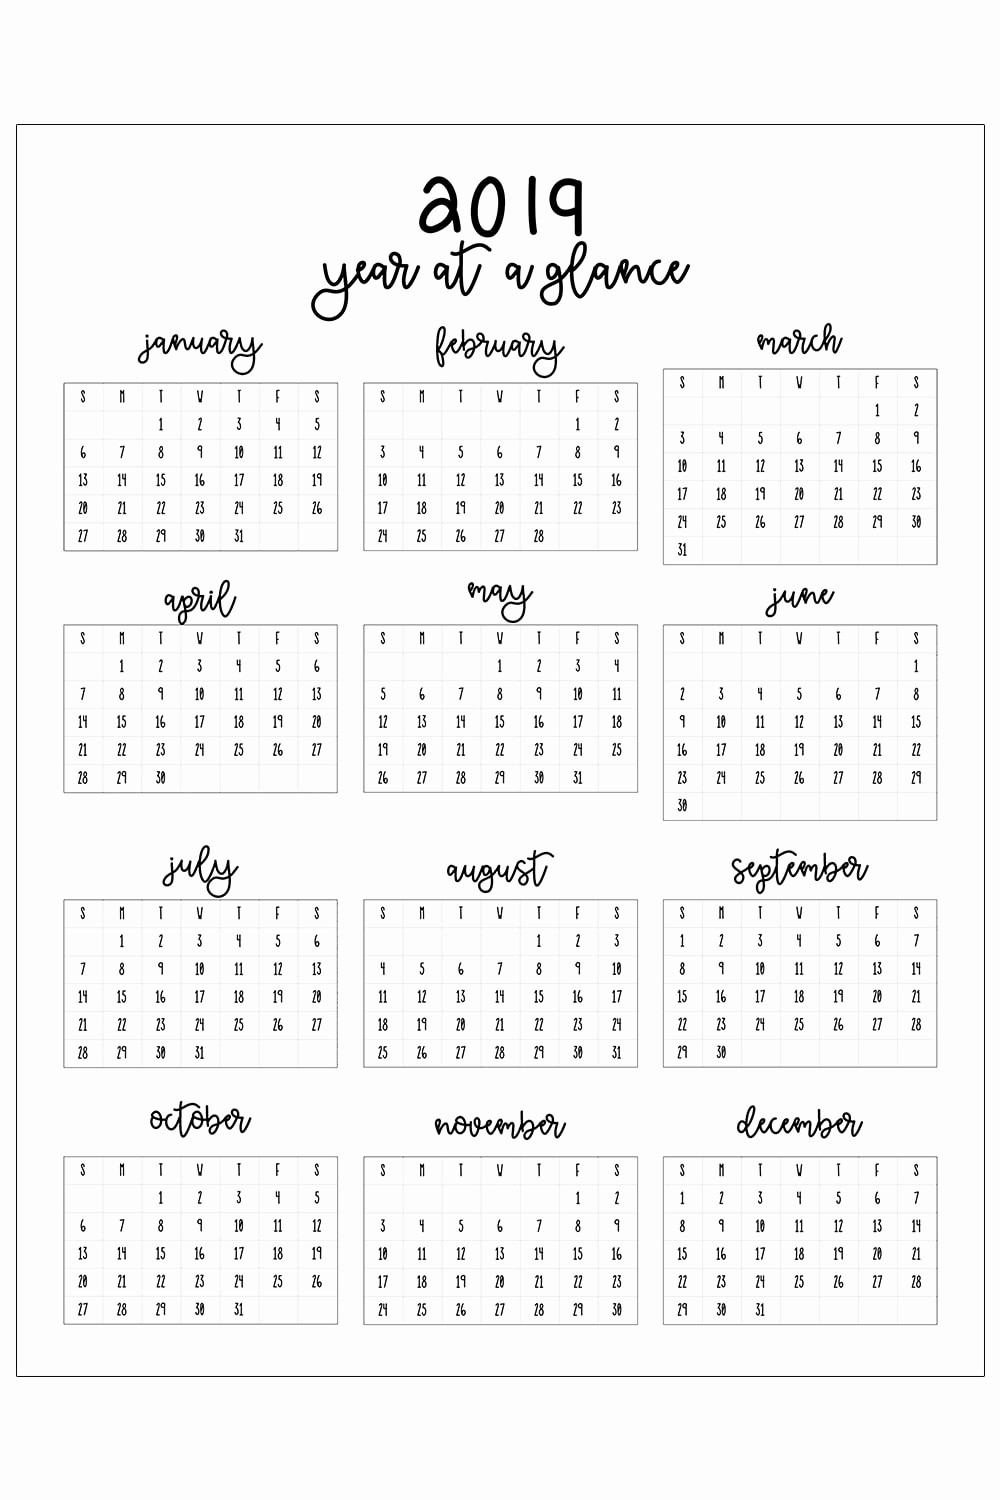 2019 Printable Calendar by Month Best Of 2019 Printable Calendar